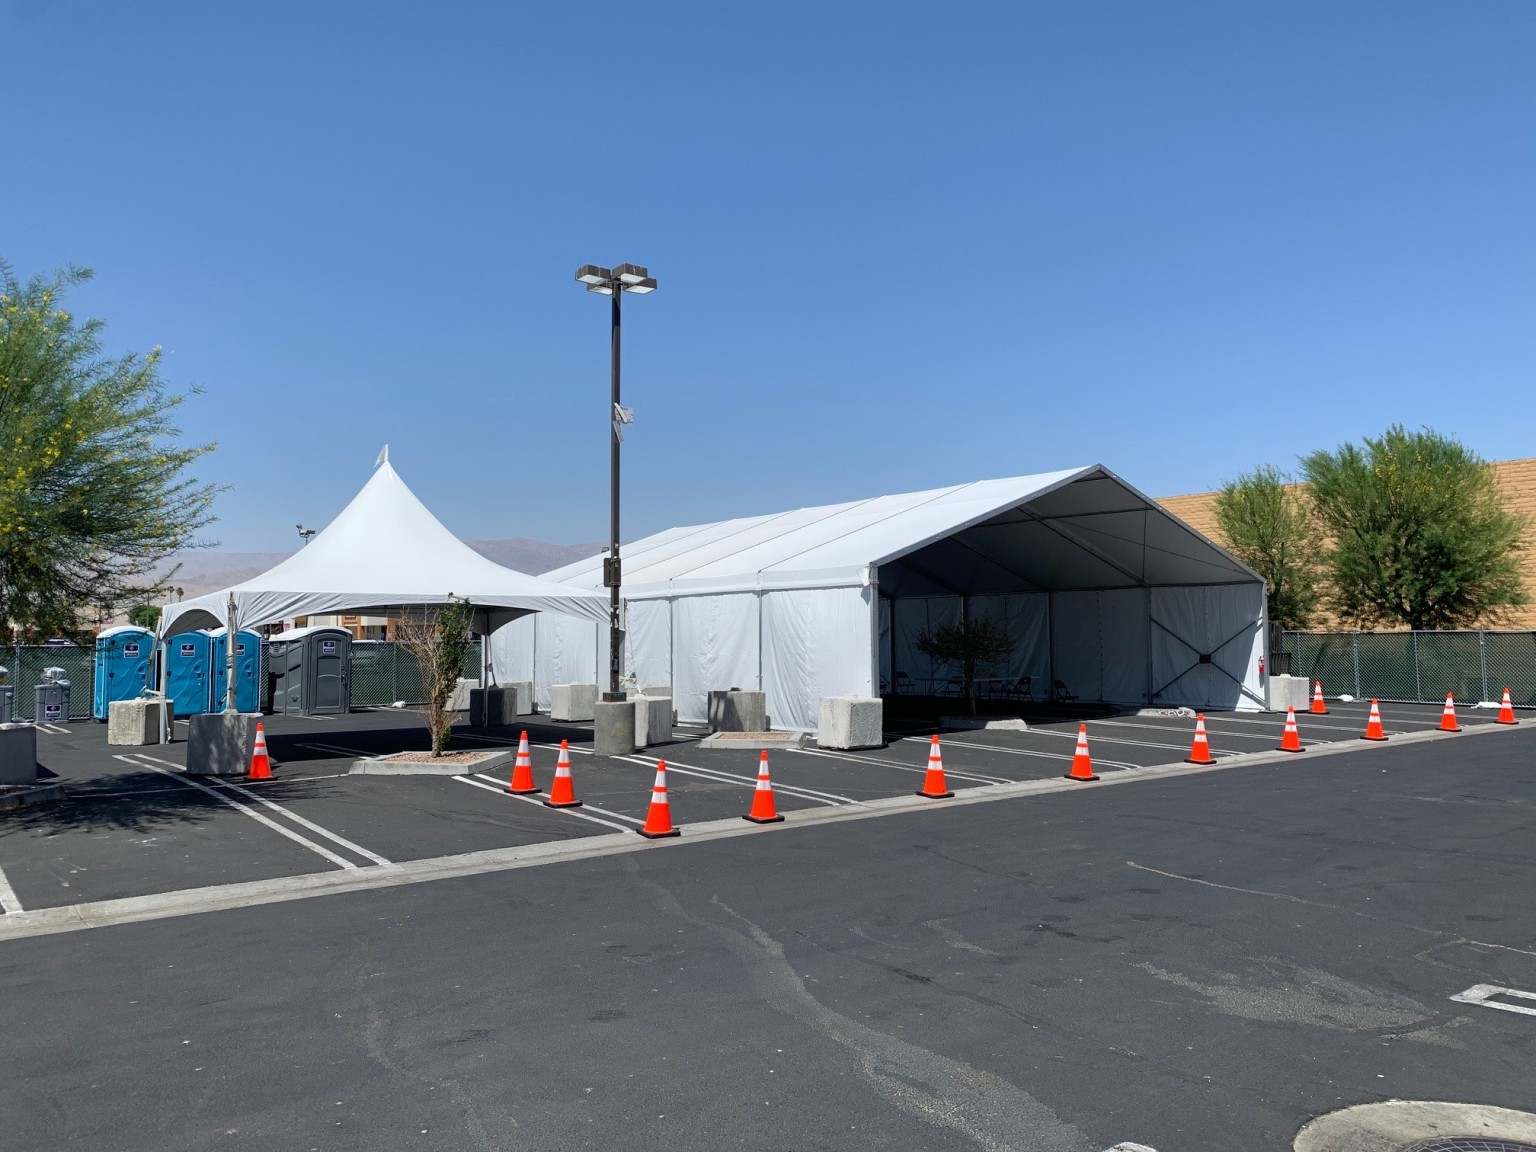 State provides vaccinations to local asylum seekers at Indio facility